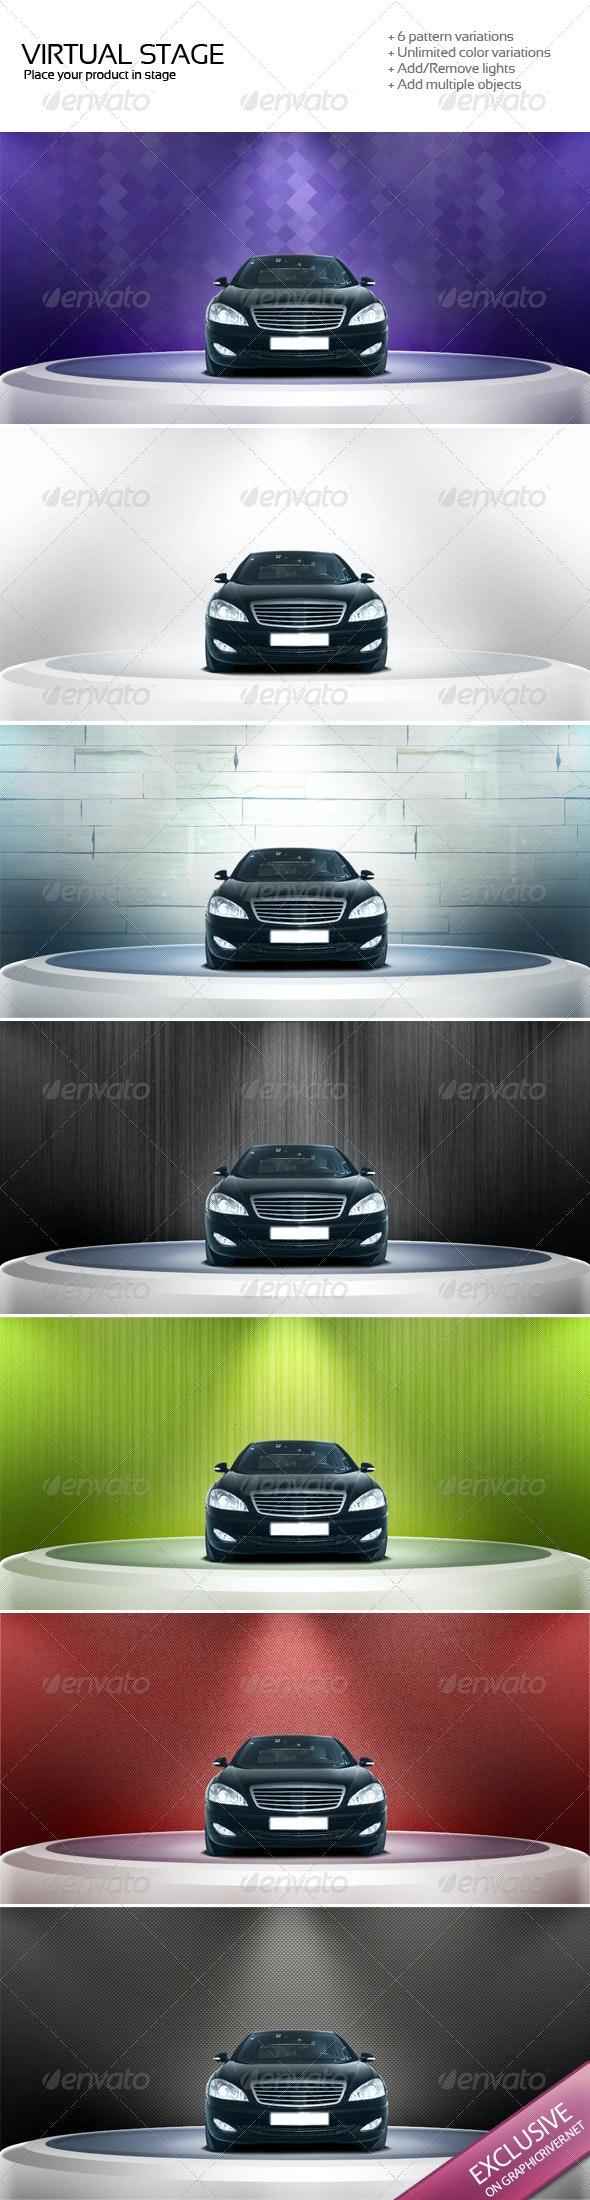 Virtual Stage - Backgrounds Graphics